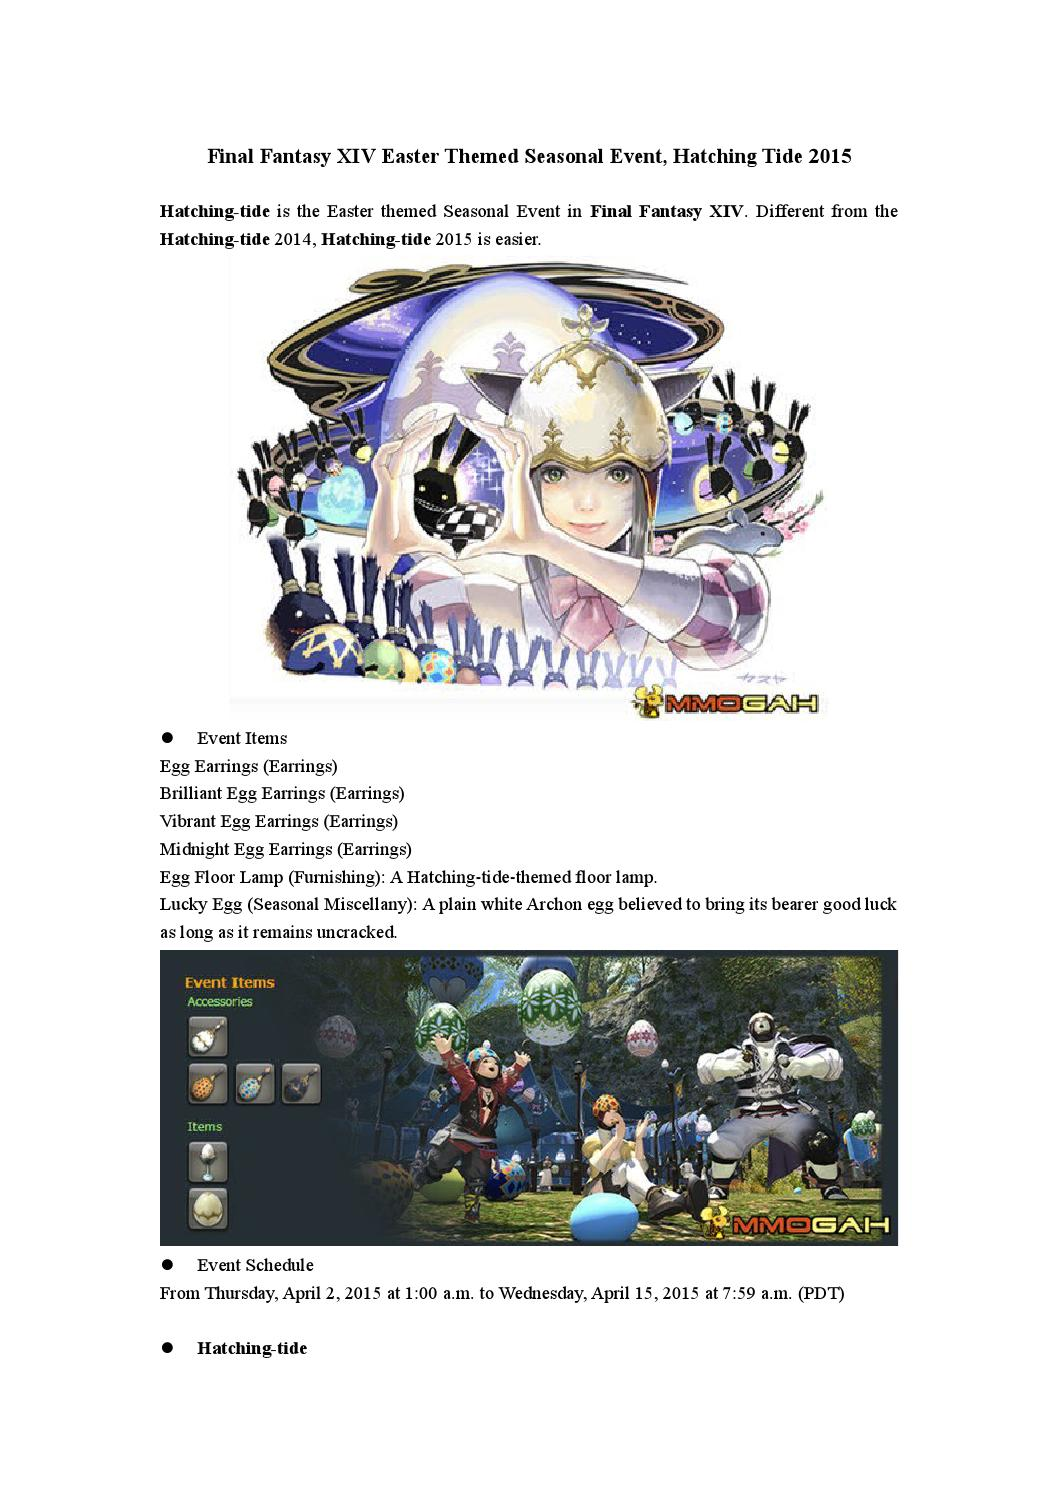 Final Fantasy Xiv Easter Themed Seasonal Event Hatching